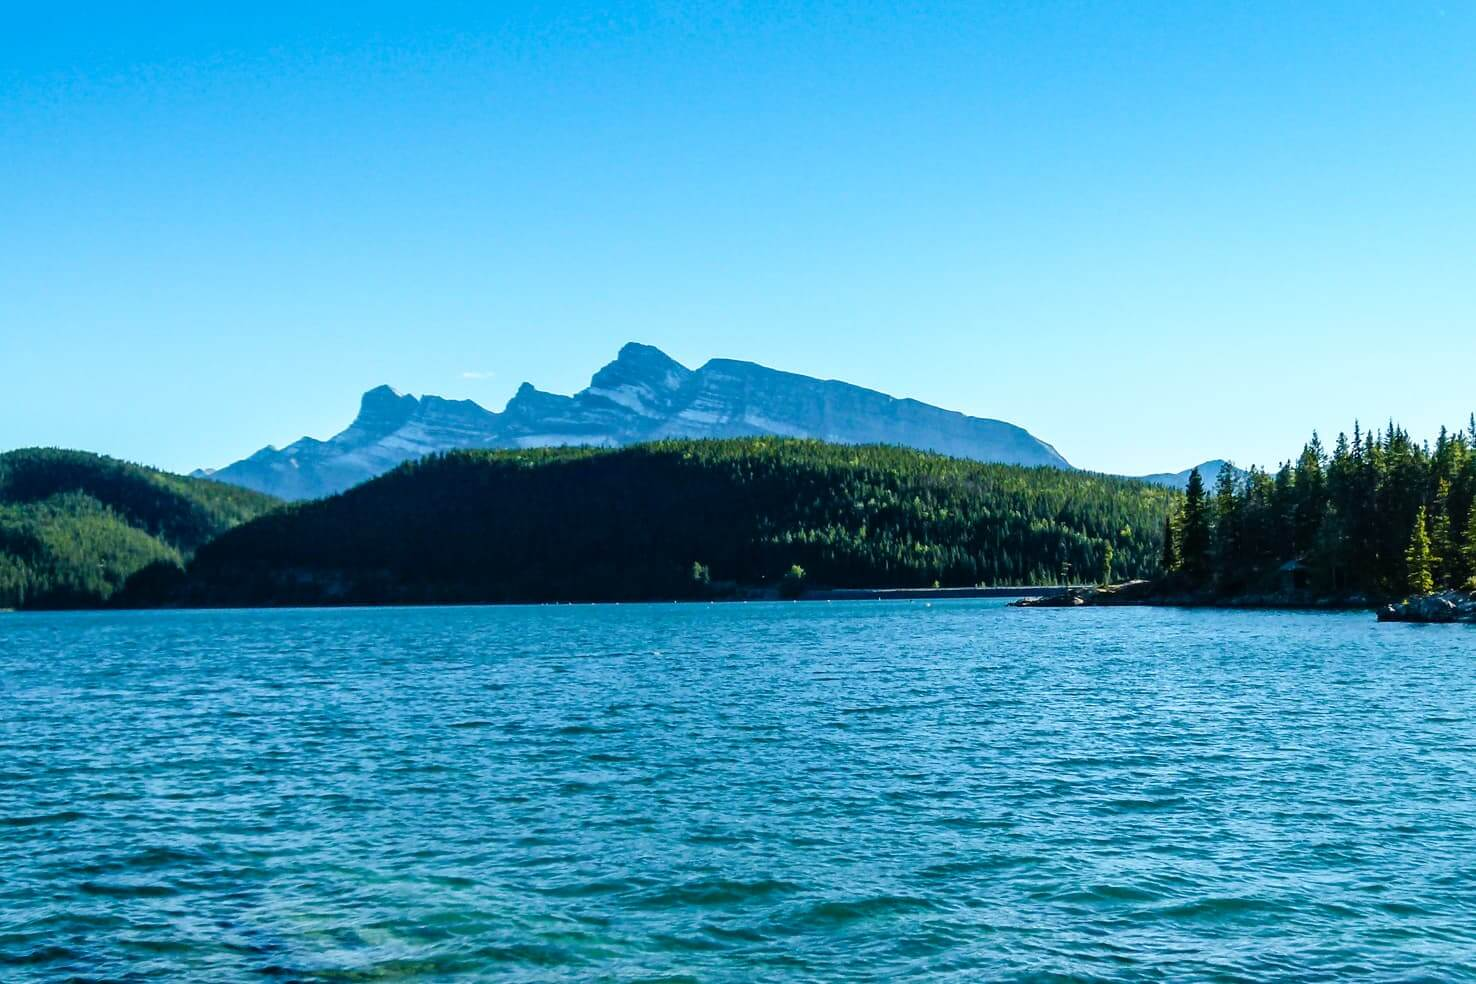 100 best things to do in Banff National Park, Canada - Go scuba diving at Lake Minnewanka